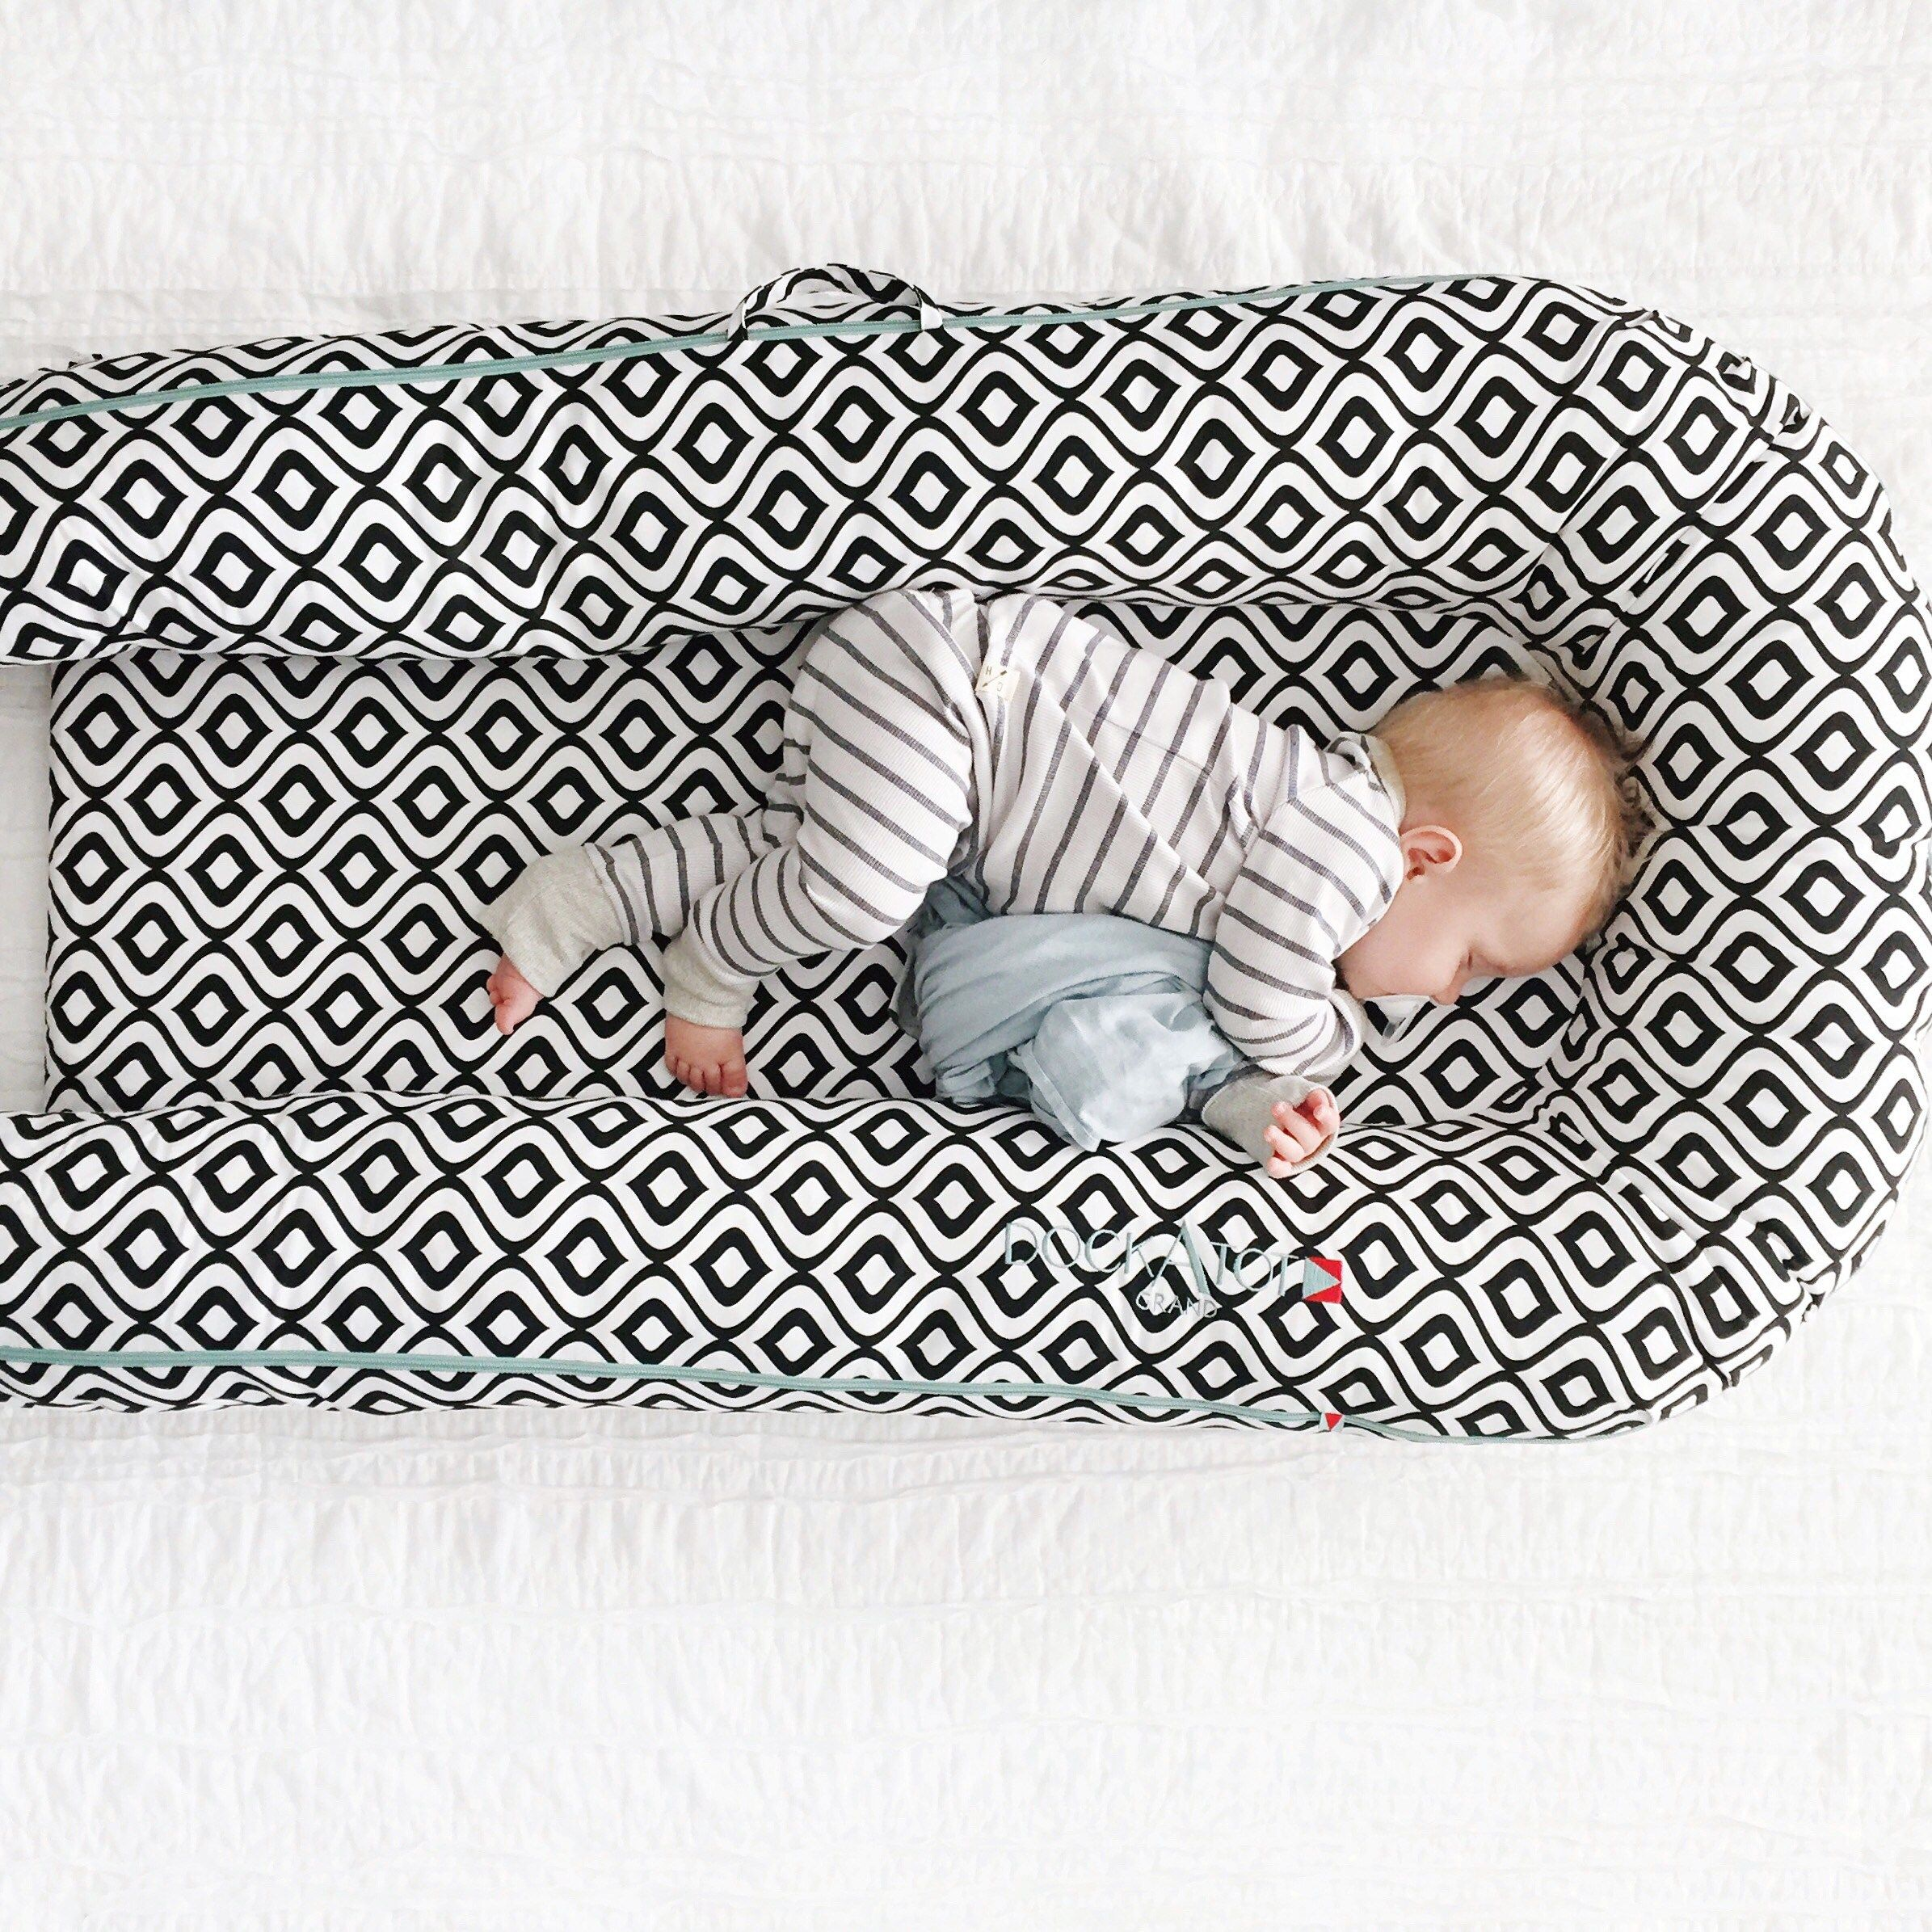 DockATot Portable Baby Bed Has Helped A Ton With Travel! Weu0027ve Traveled A  Lot Since Weu0027ve Had Houston And The Dock A Tot Has Been A Big Lifesaver As  Far As ...